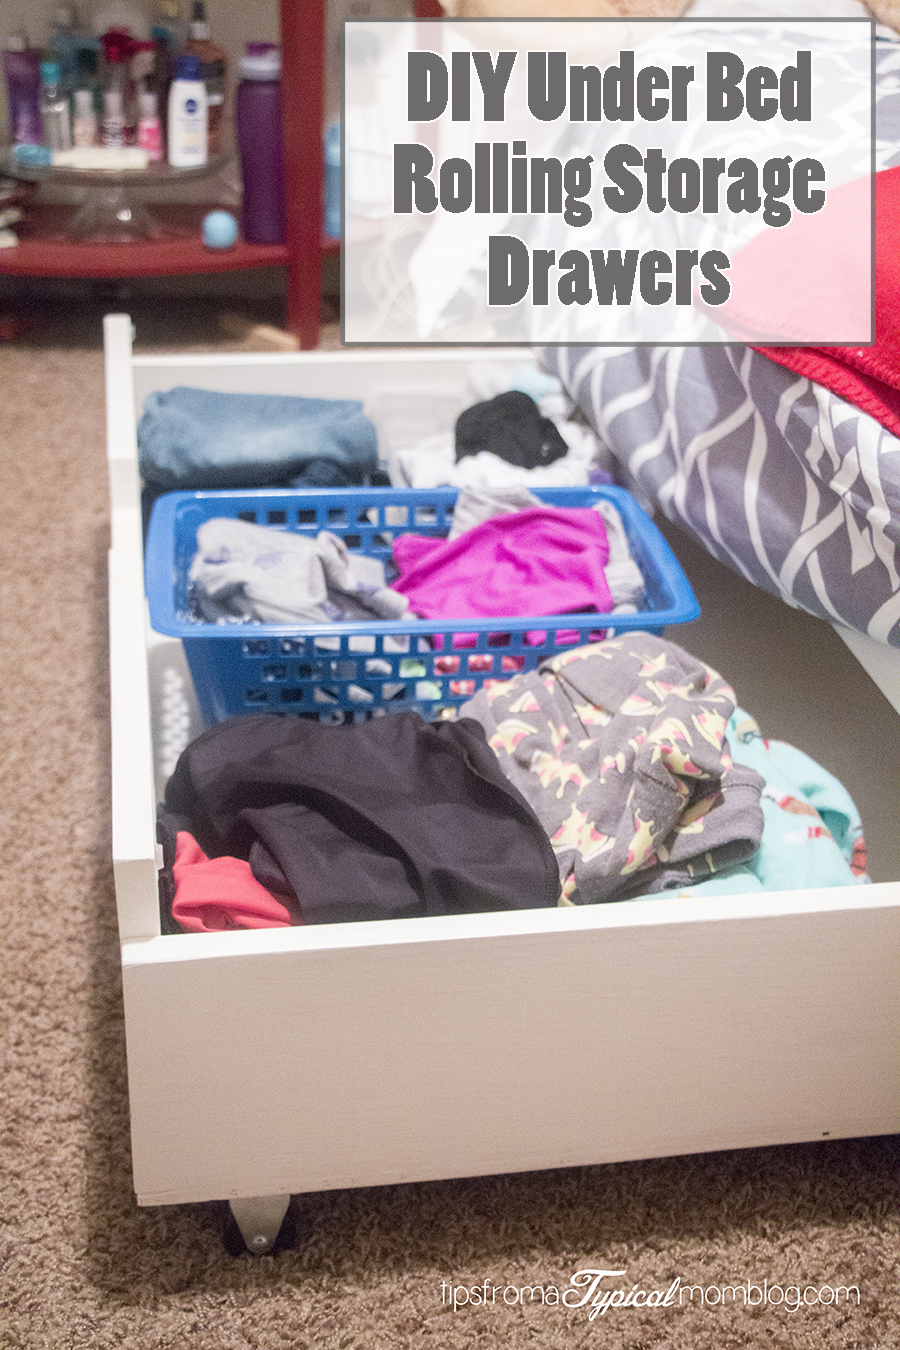 DIY Under Bed Rolling Storage Drawers Tutorial & DIY Under Bed Rolling Storage Drawers Tutorial - Tips from a Typical Mom